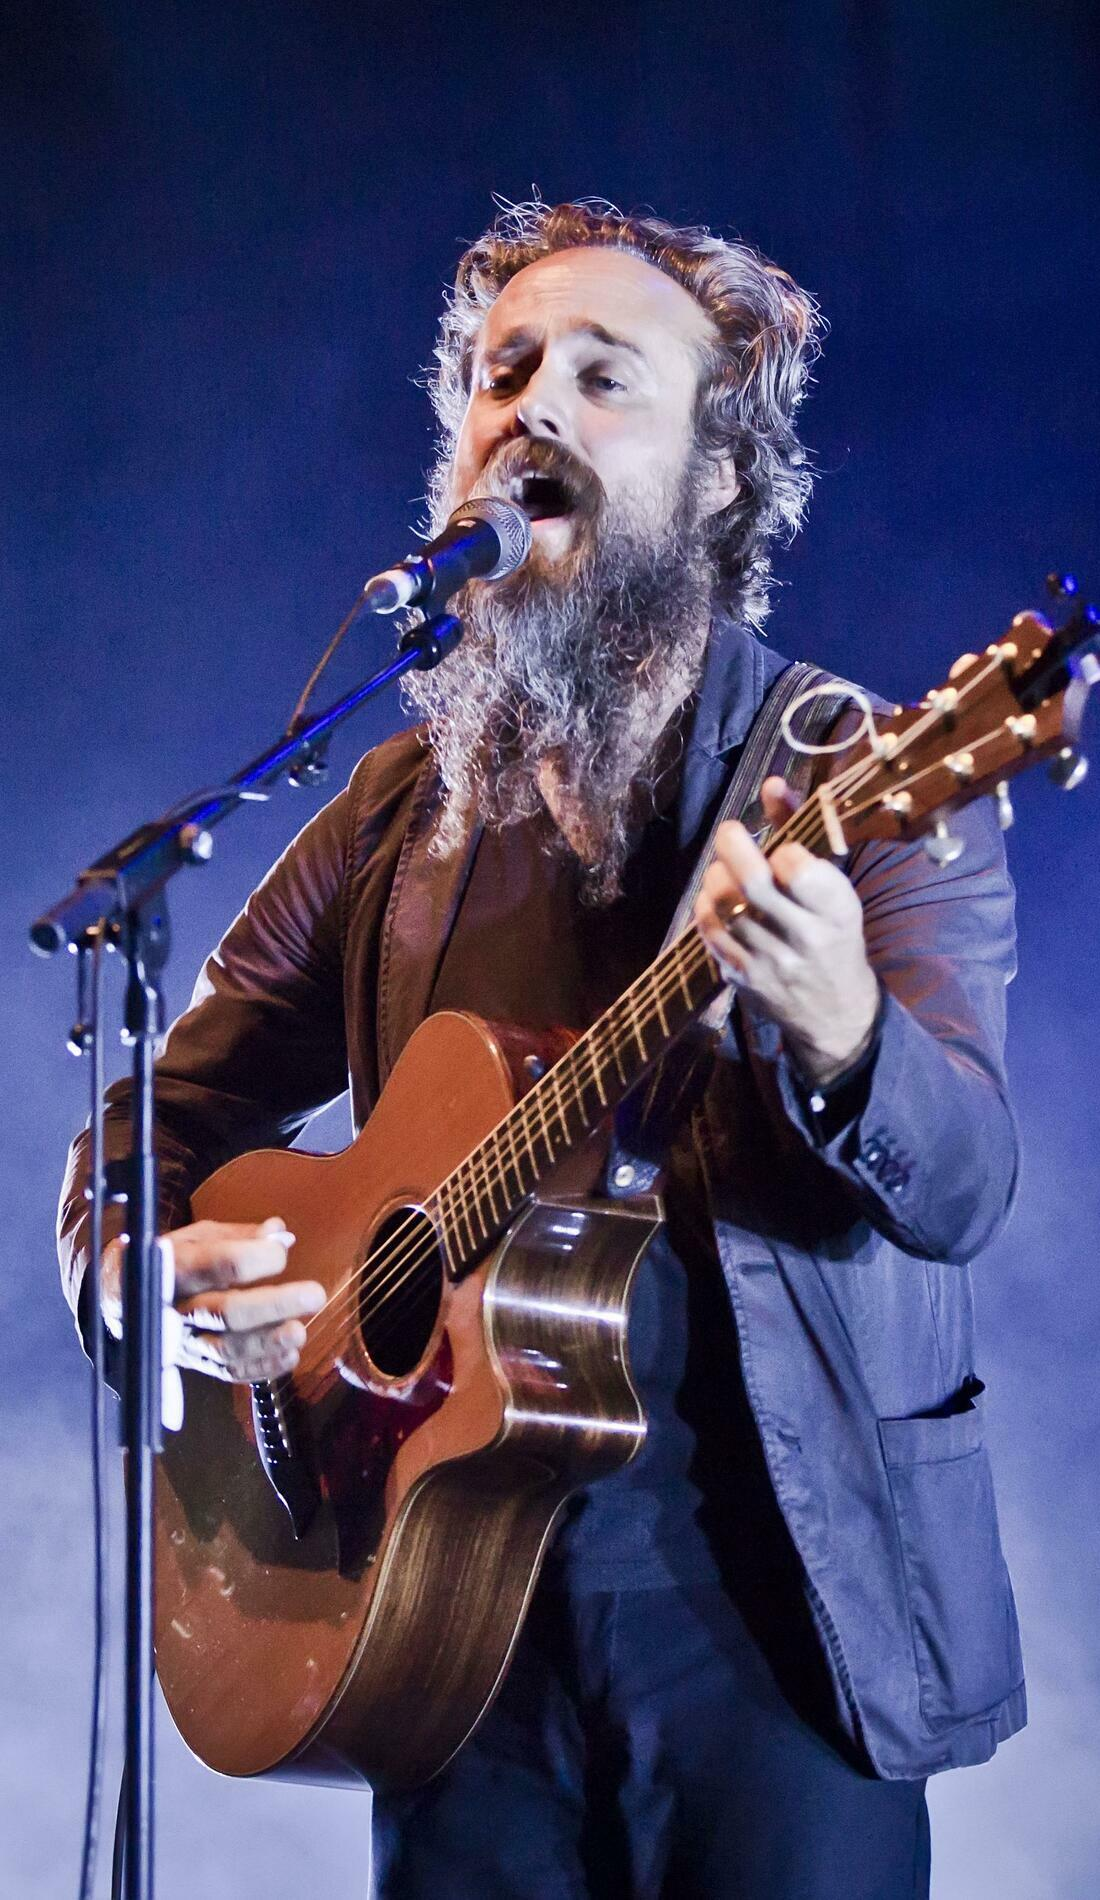 A Iron & Wine live event